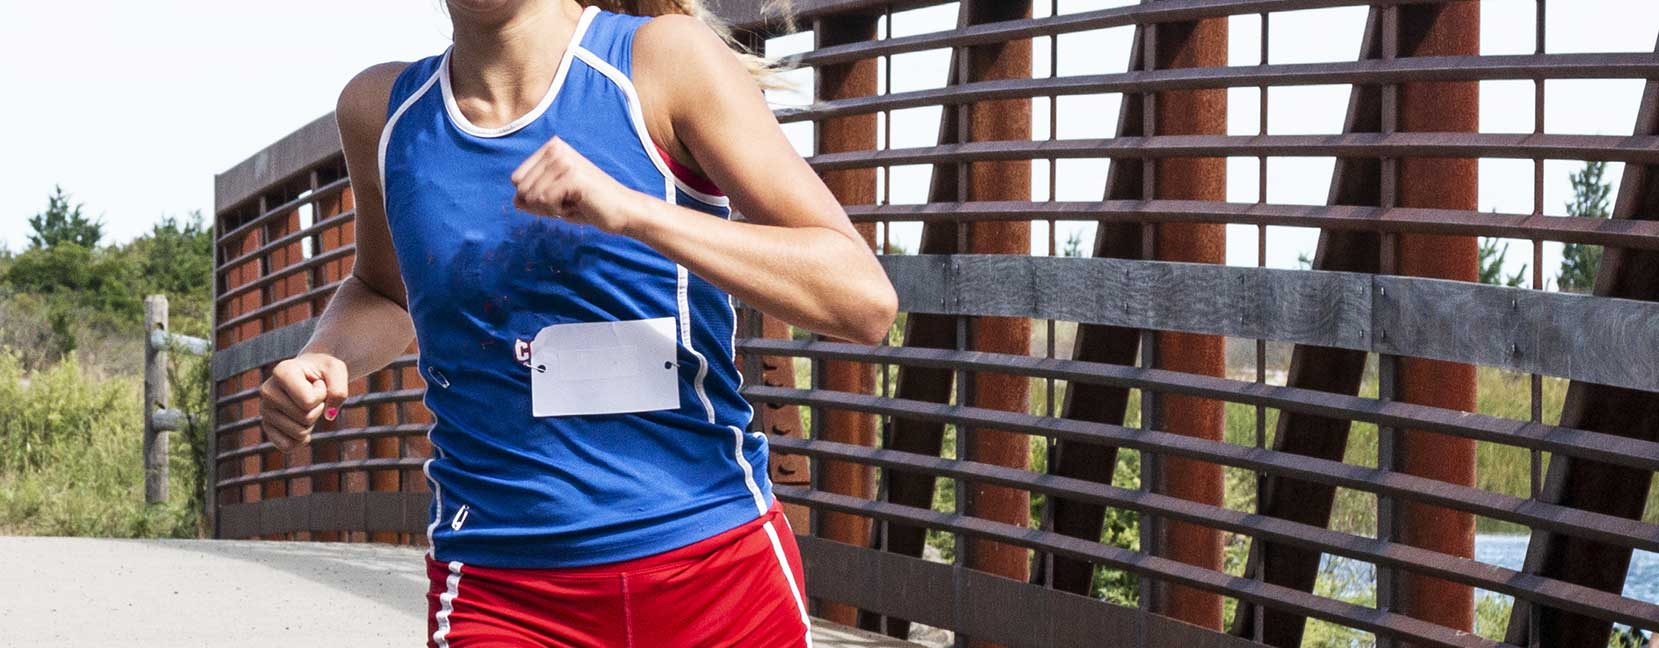 How to Keep Your Elbows from Sticking Out When You Run